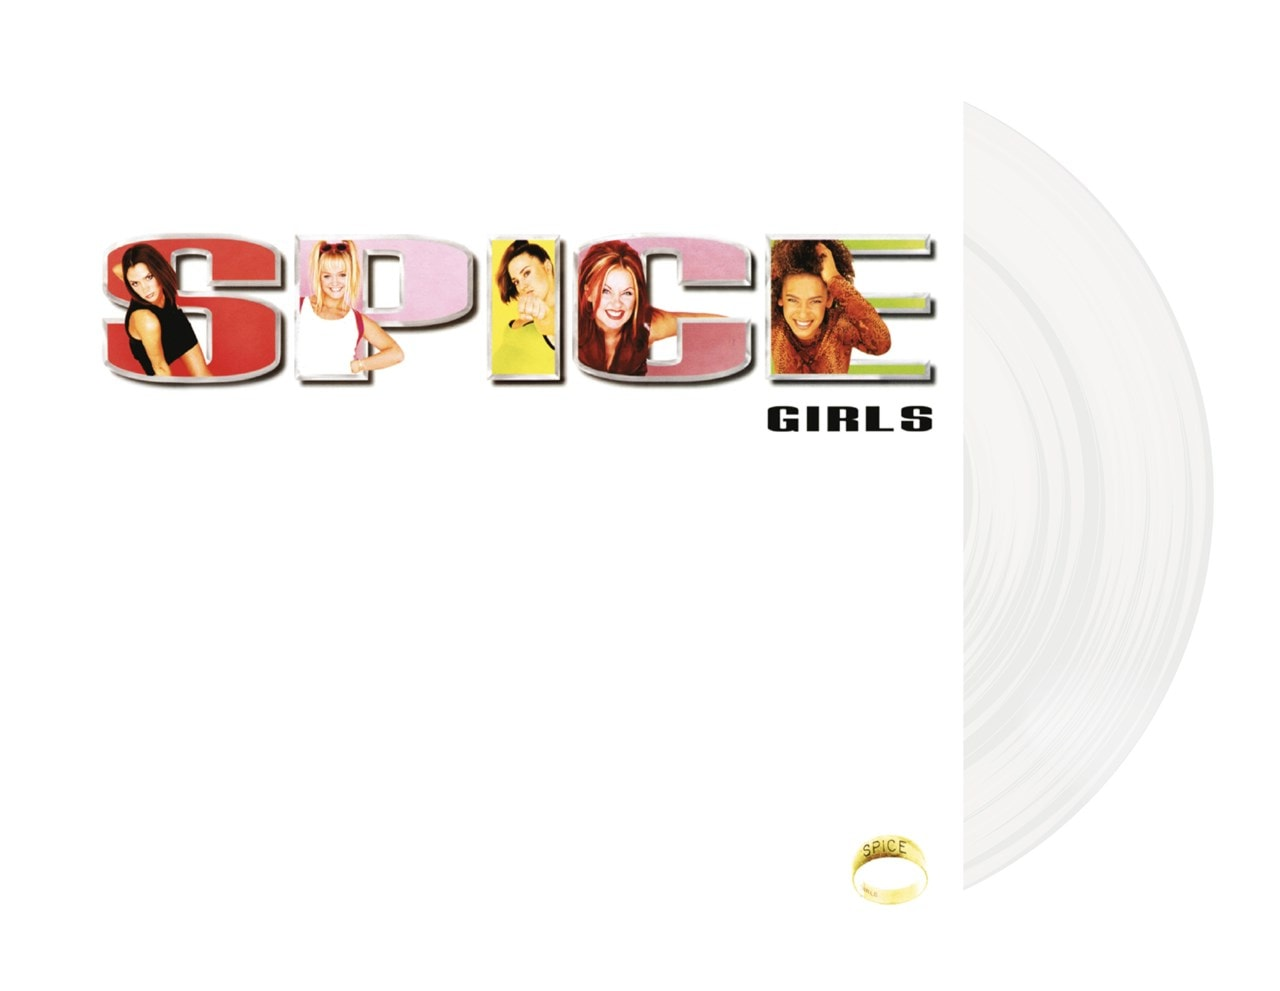 Spice - HMV Exclusive White Vinyl - 1